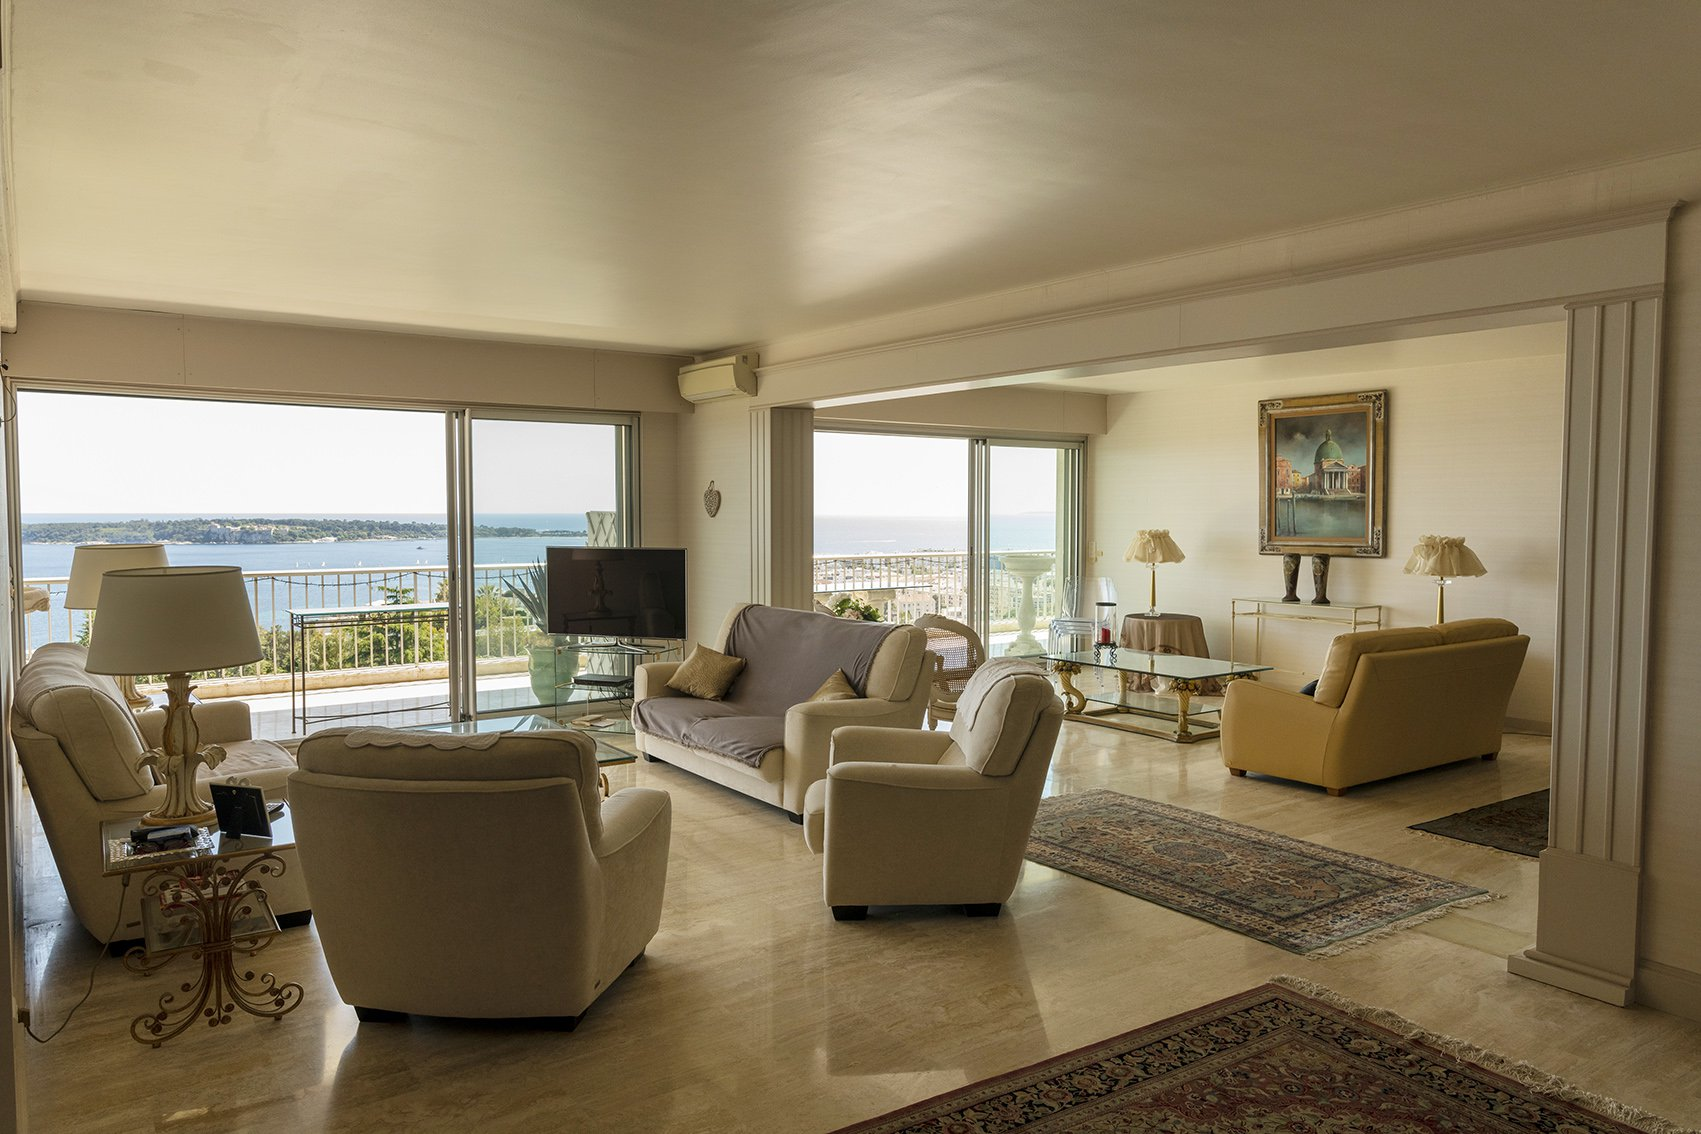 CALIFORNIE AV. ROI ALBERT 7P 230M² + 52M² Ter. 180° SEA VIEW